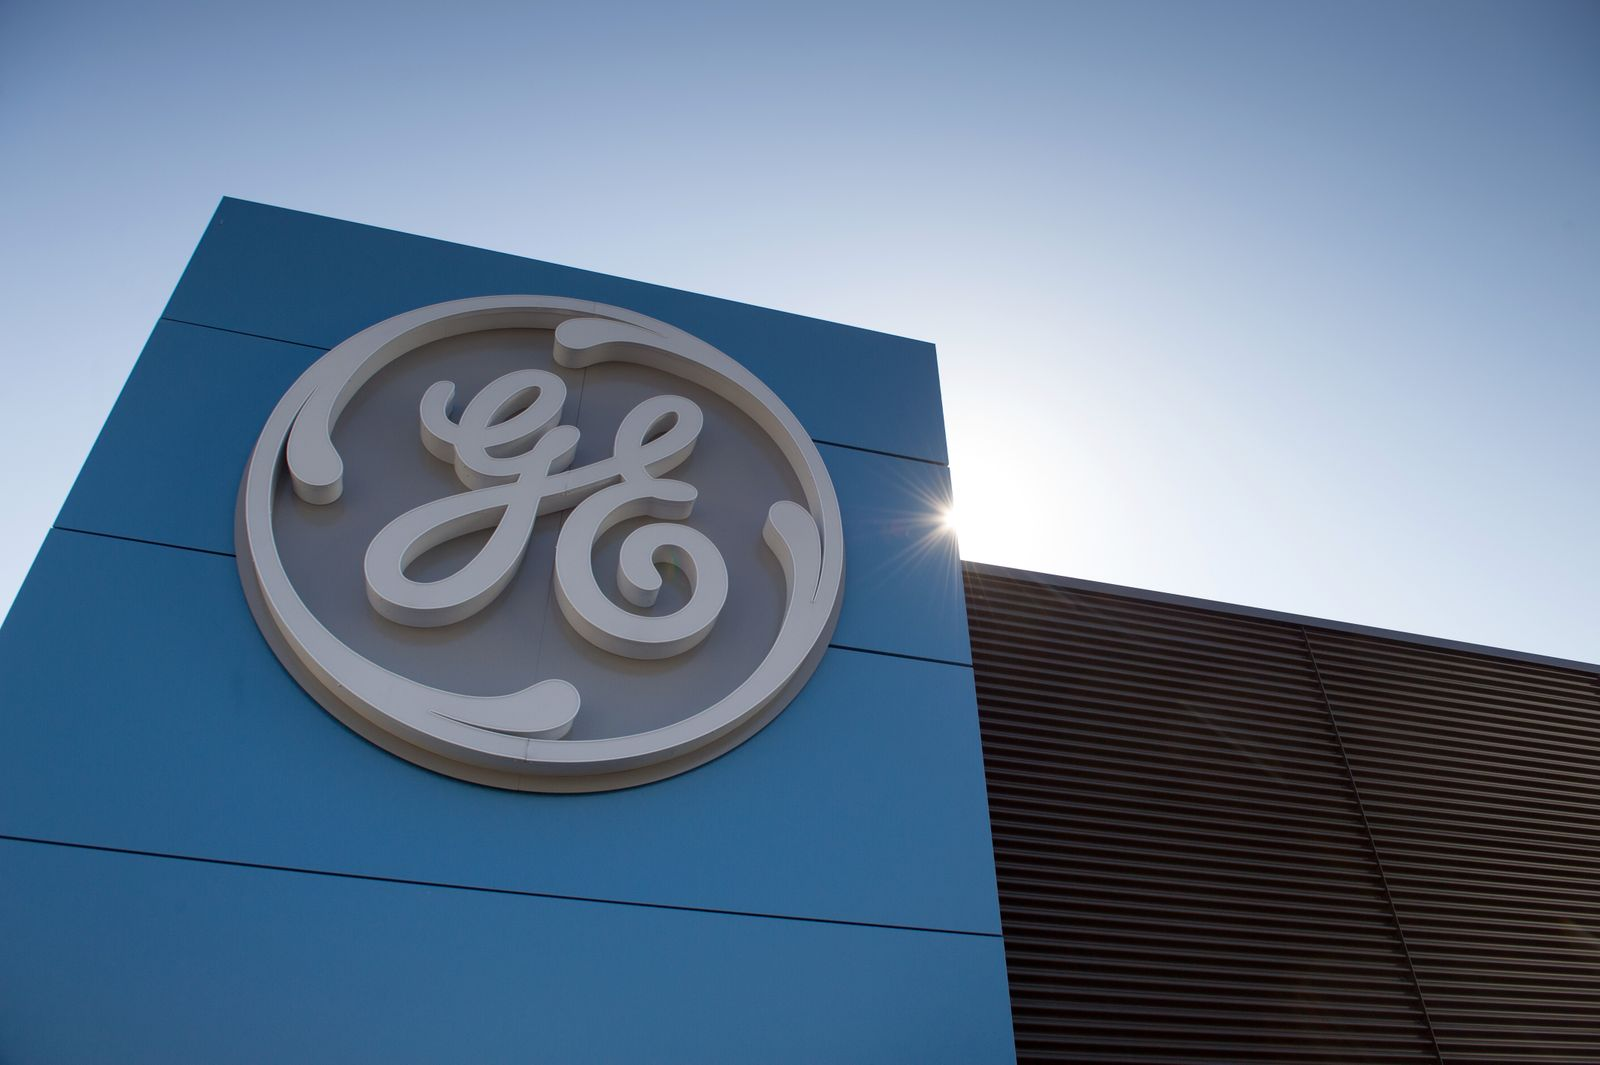 GE / General Electric / Frankreich